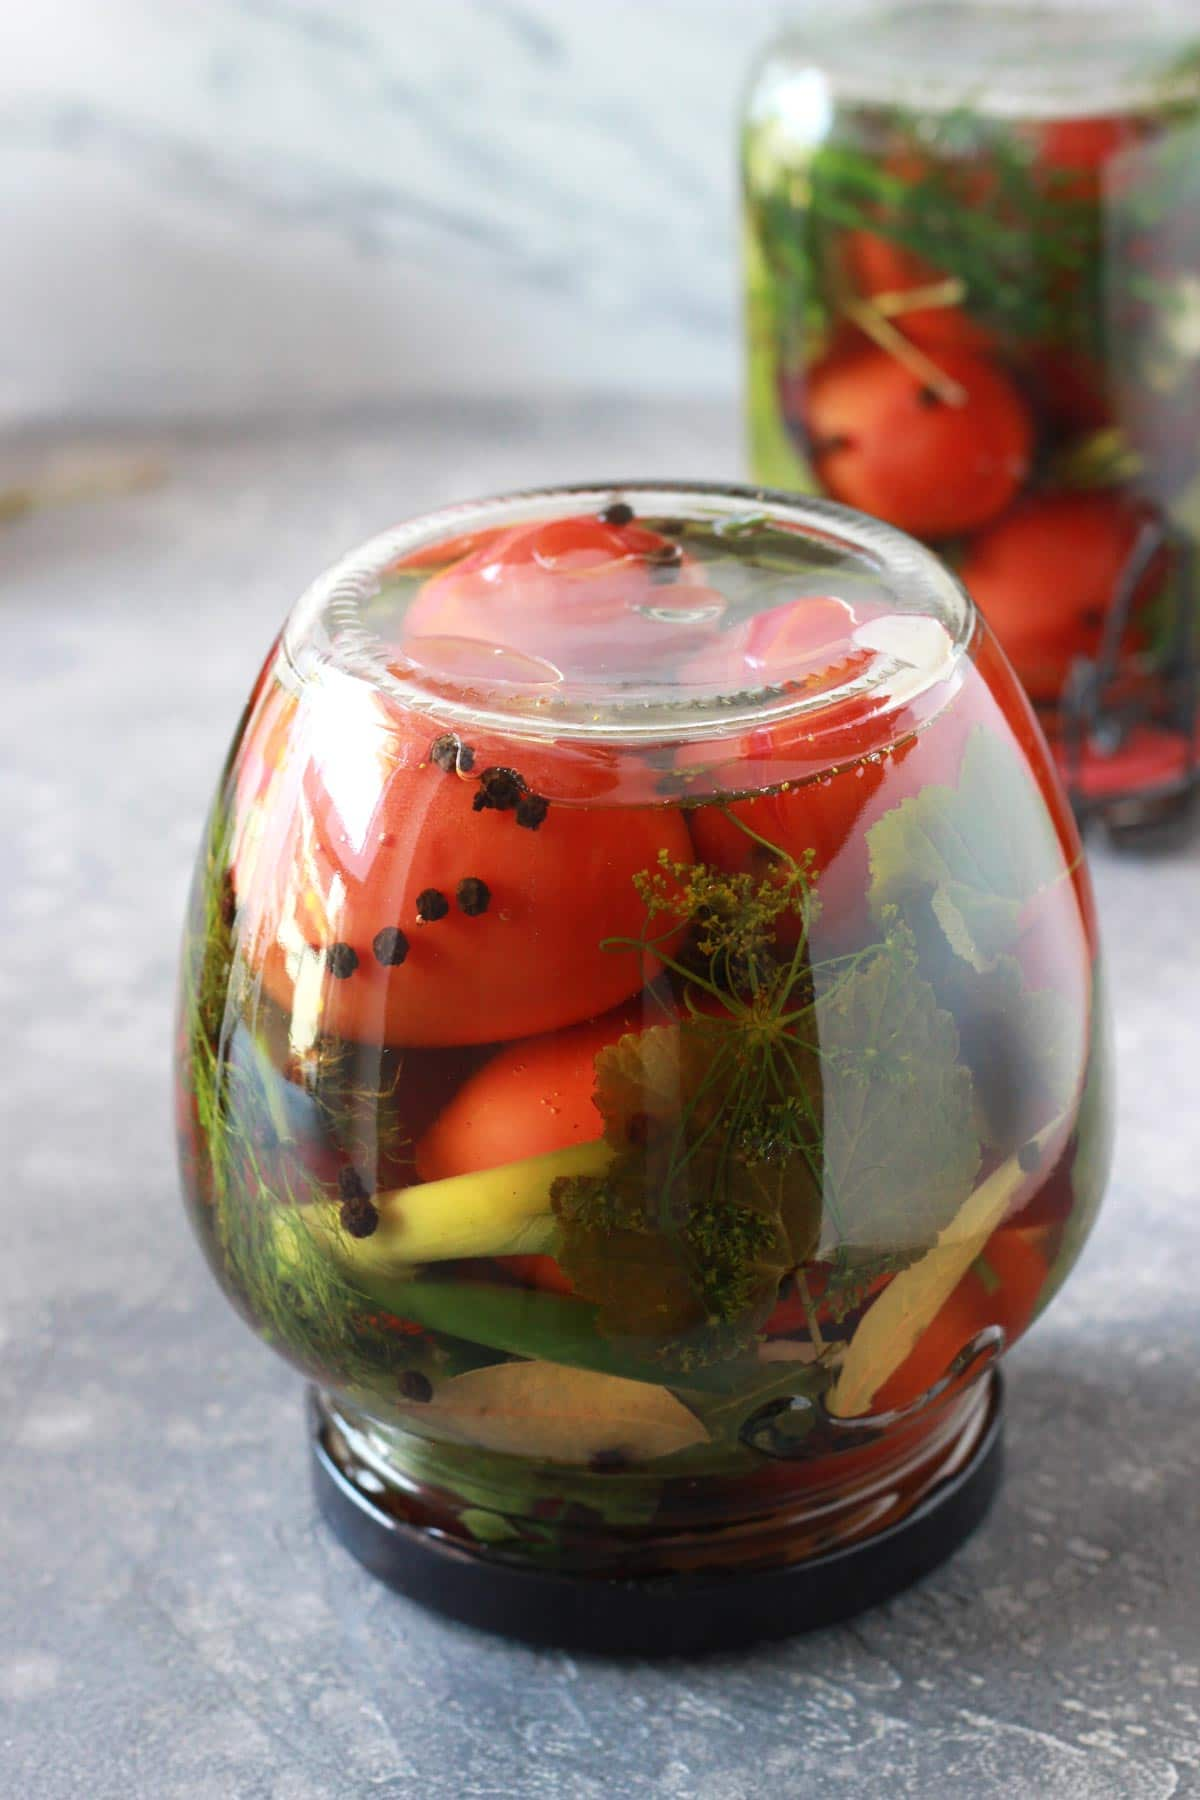 A jar with tomatoes upside down.